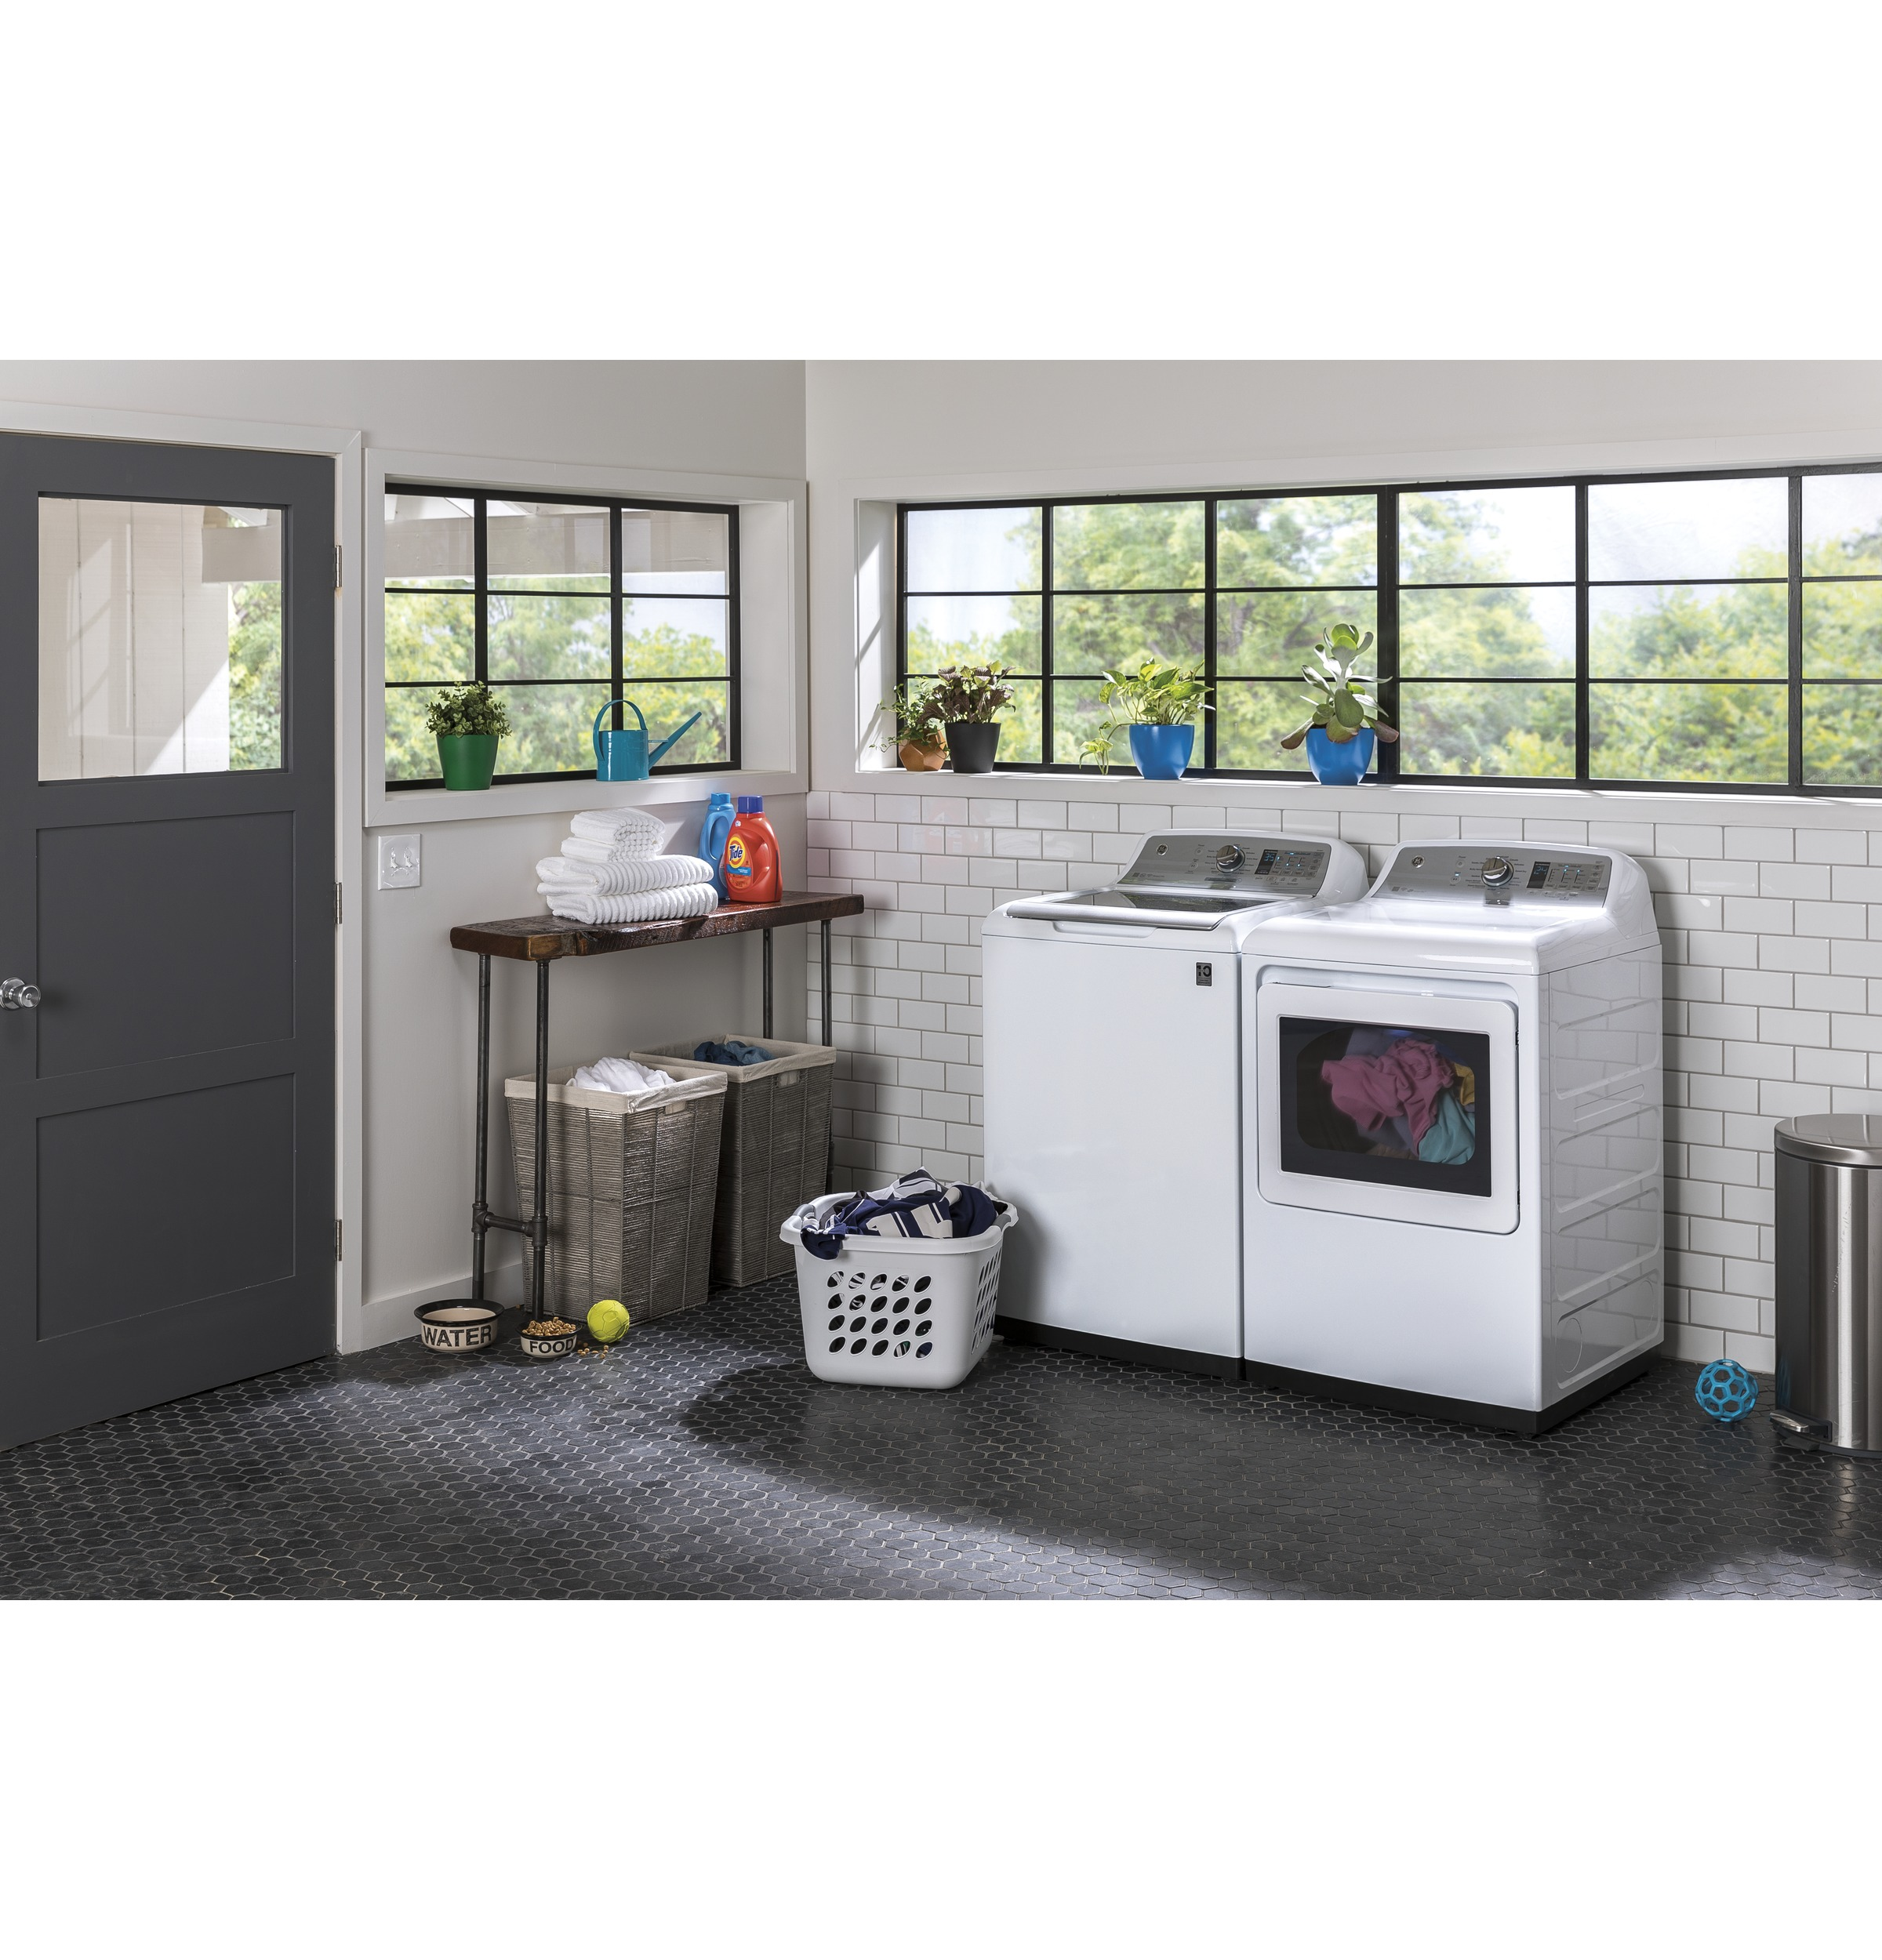 Model: GTW755CSMWS | GE® 4.9  cu. ft. Capacity  Washer with Stainless Steel Basket